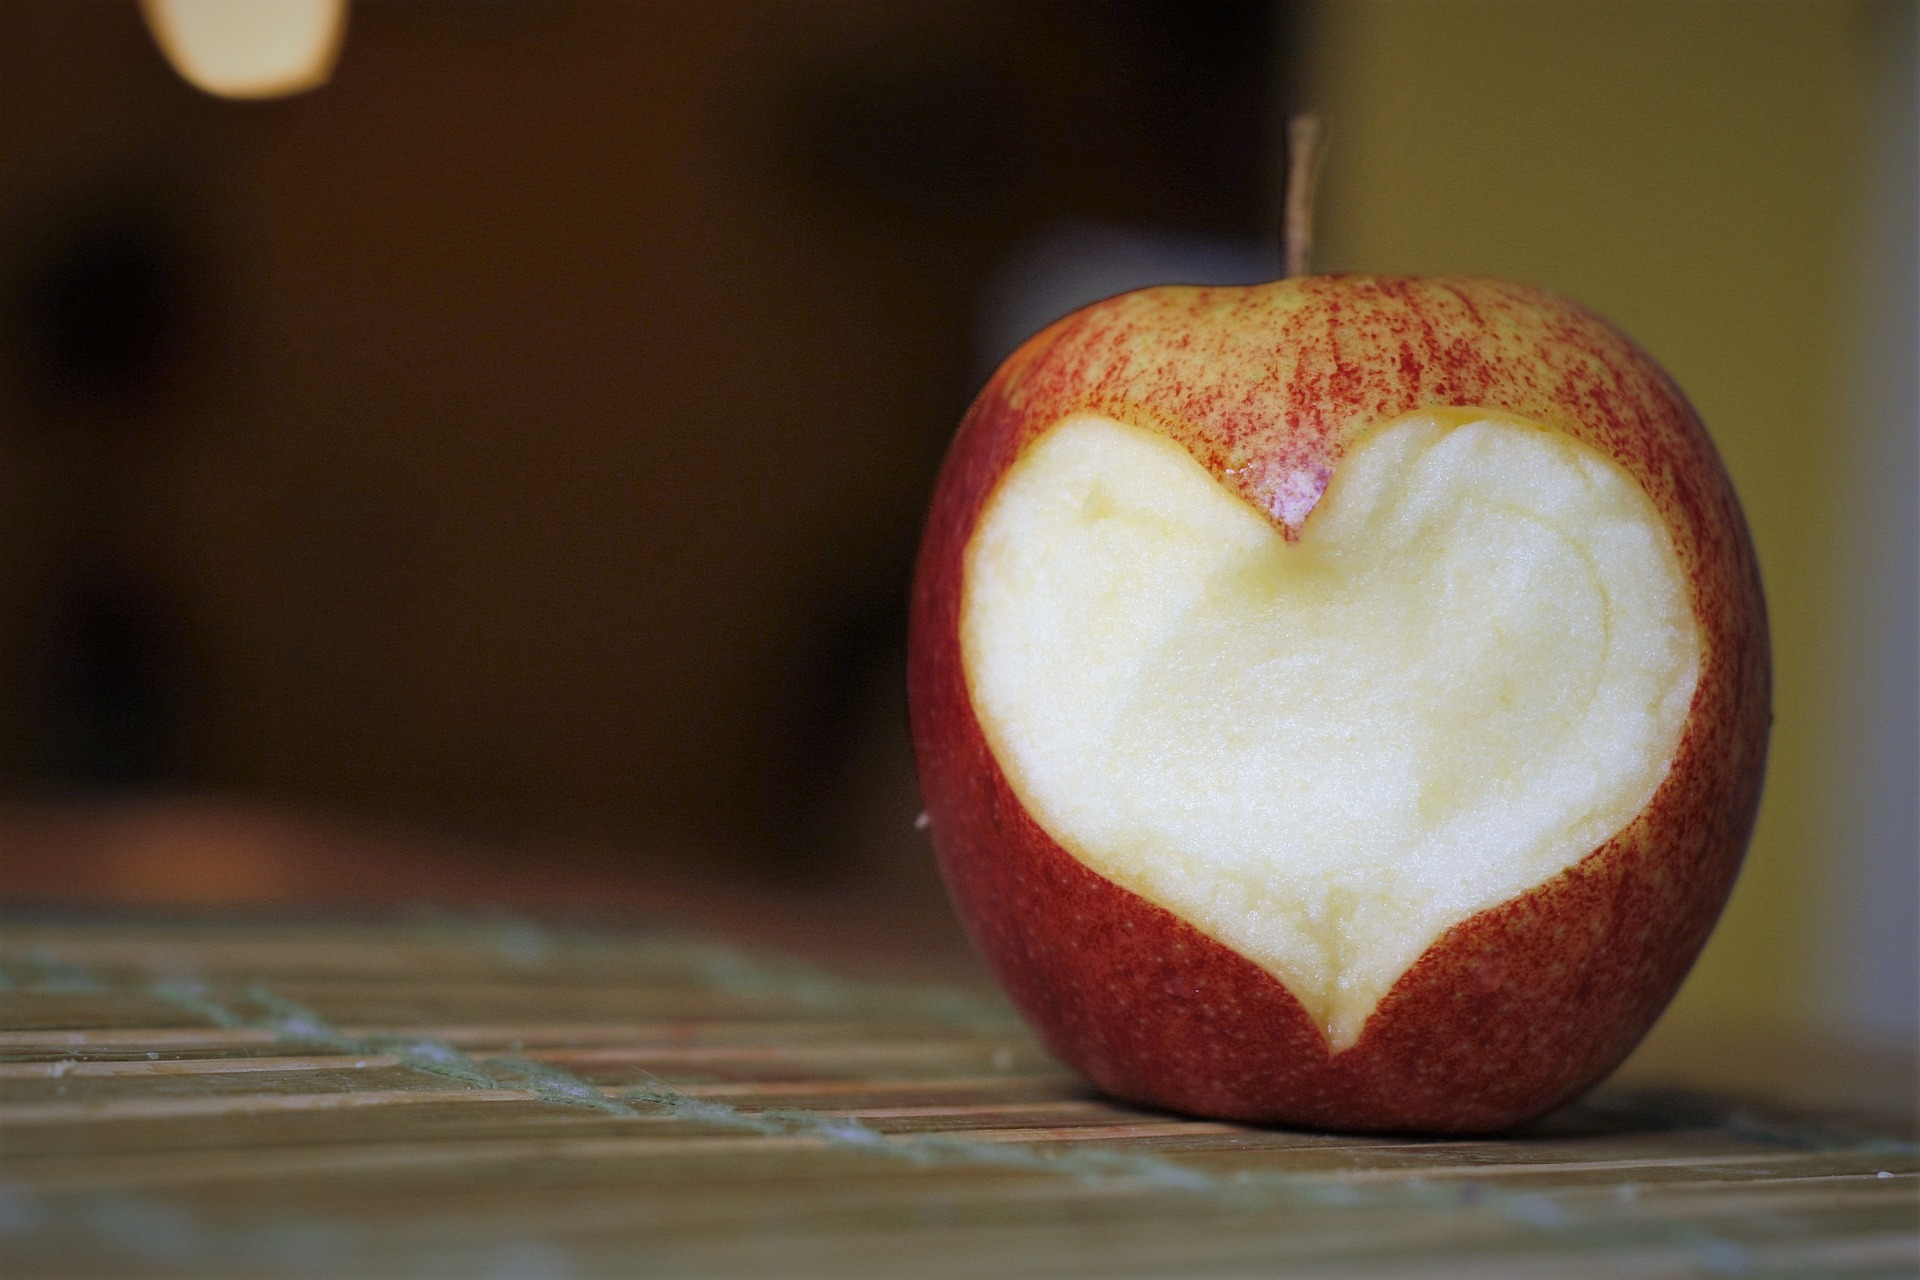 Heart Research UK and SUBWAY Offer Healthy Heart Grants